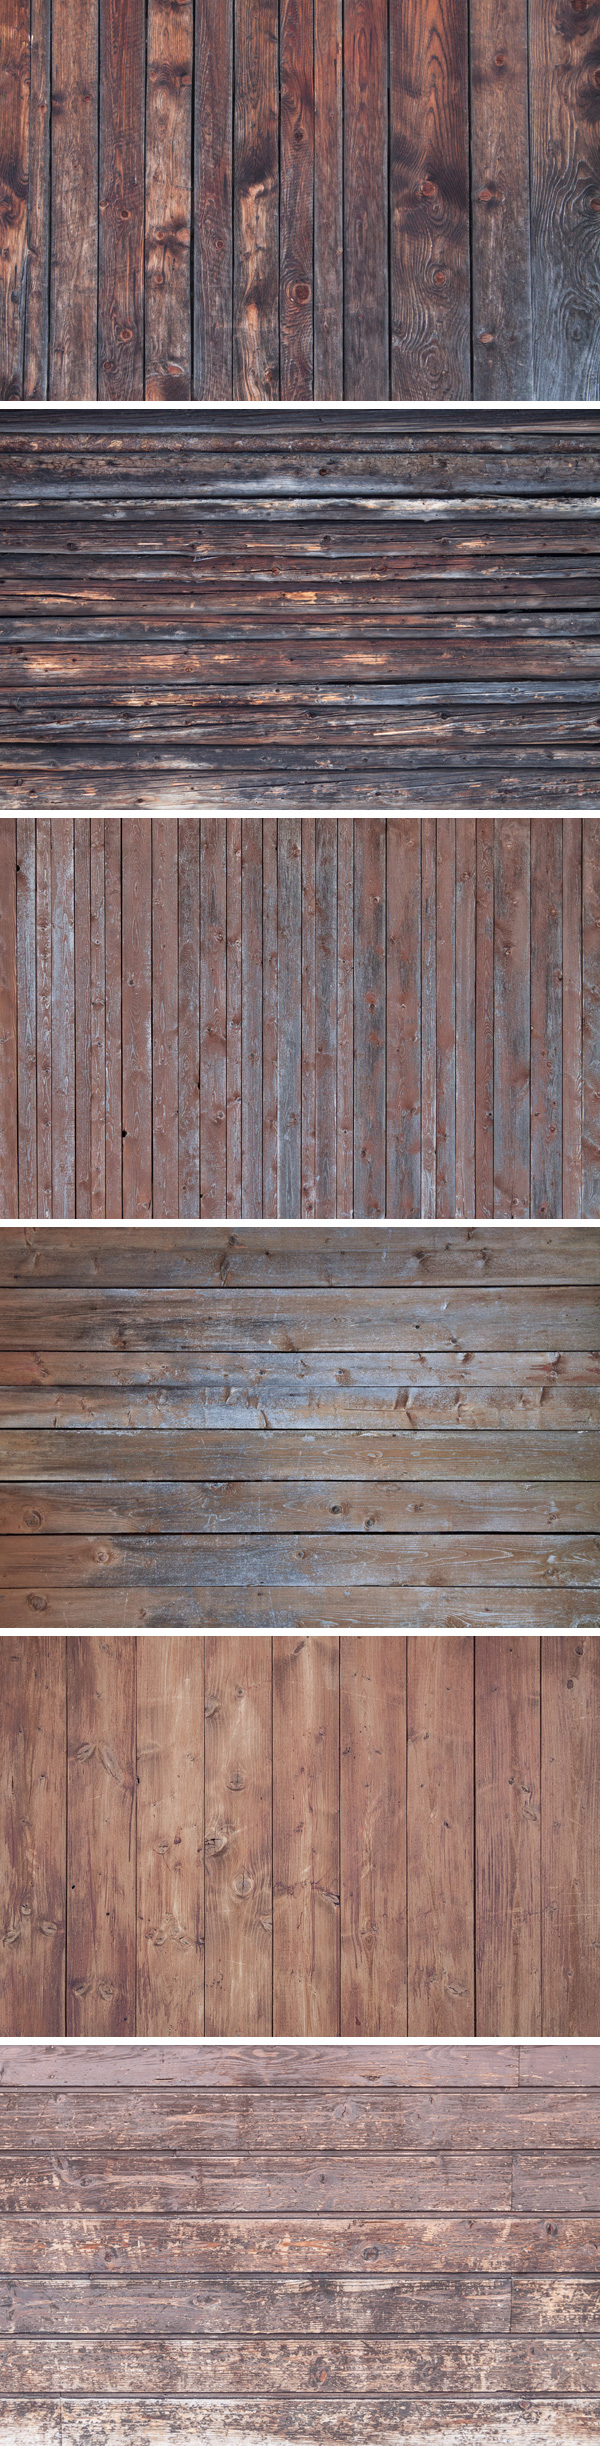 12 Free Vintage Wood Texture Backgrounds 2015